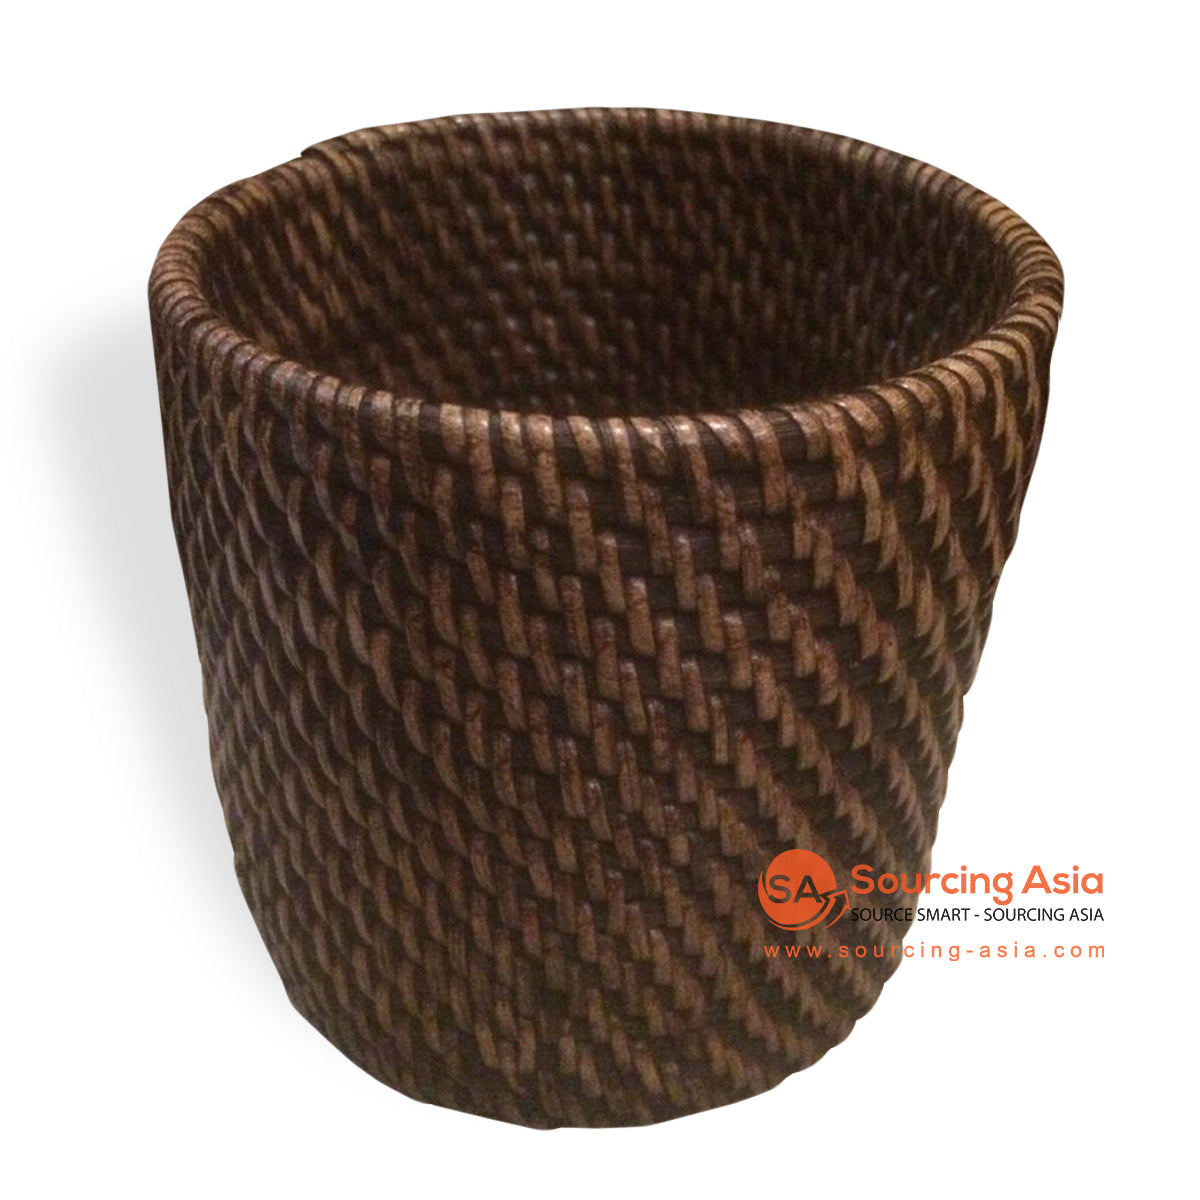 MTI117 RATTAN BOTTLE HOLDER